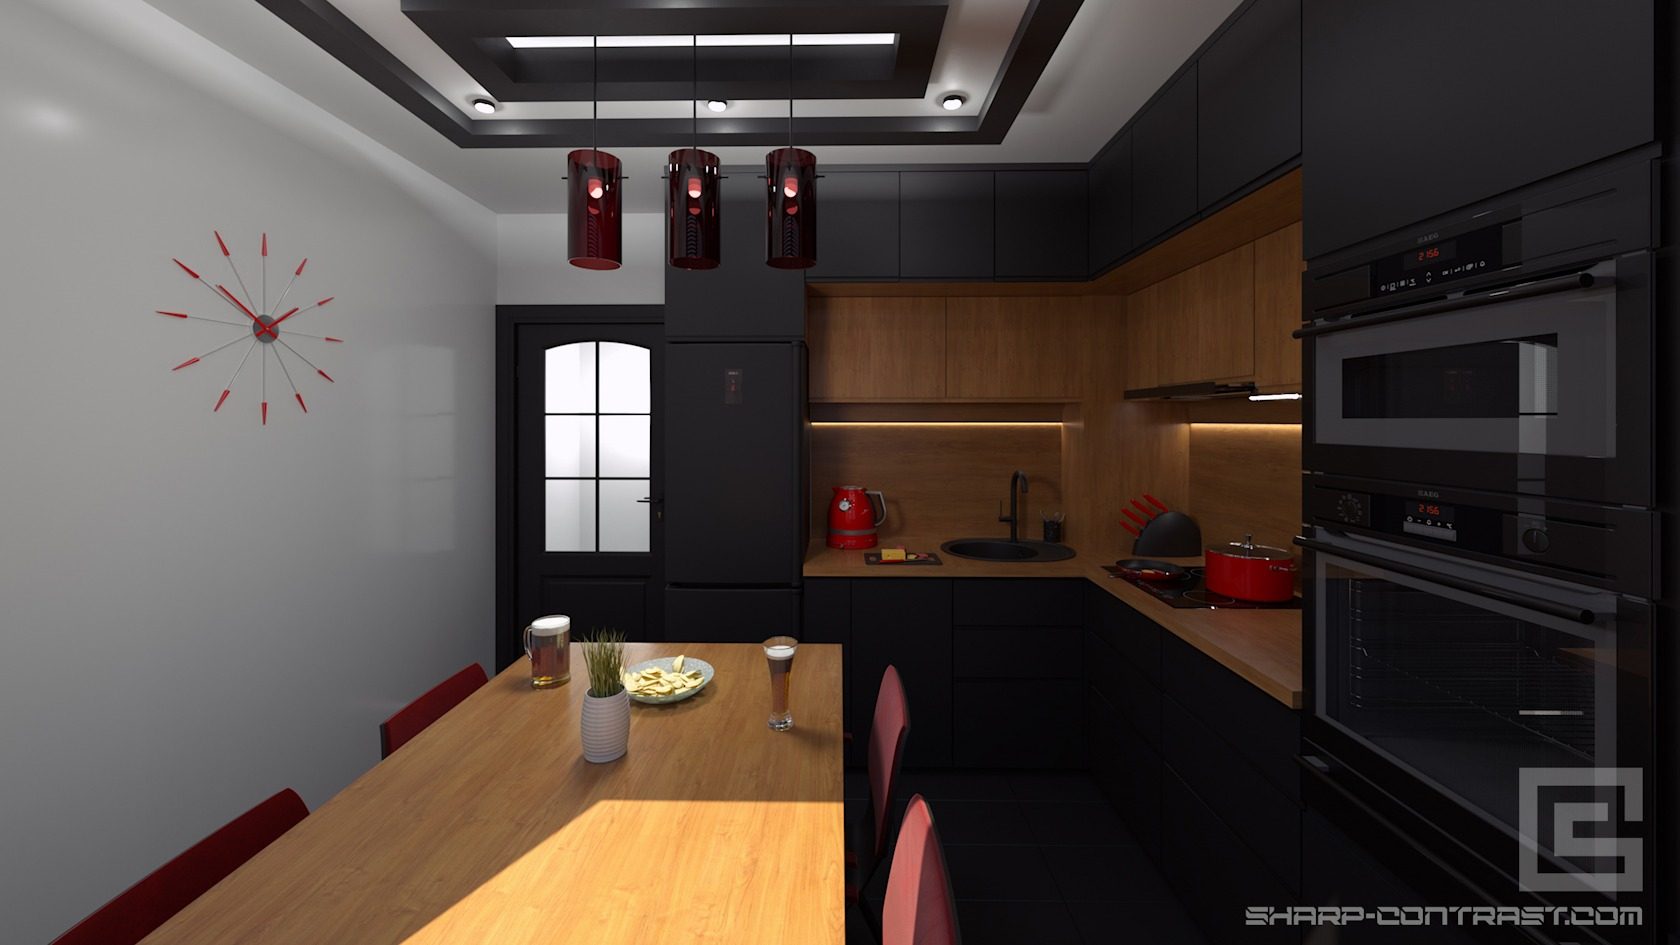 Sharp Contrast 3d realistic visualizations interior residential kitchen